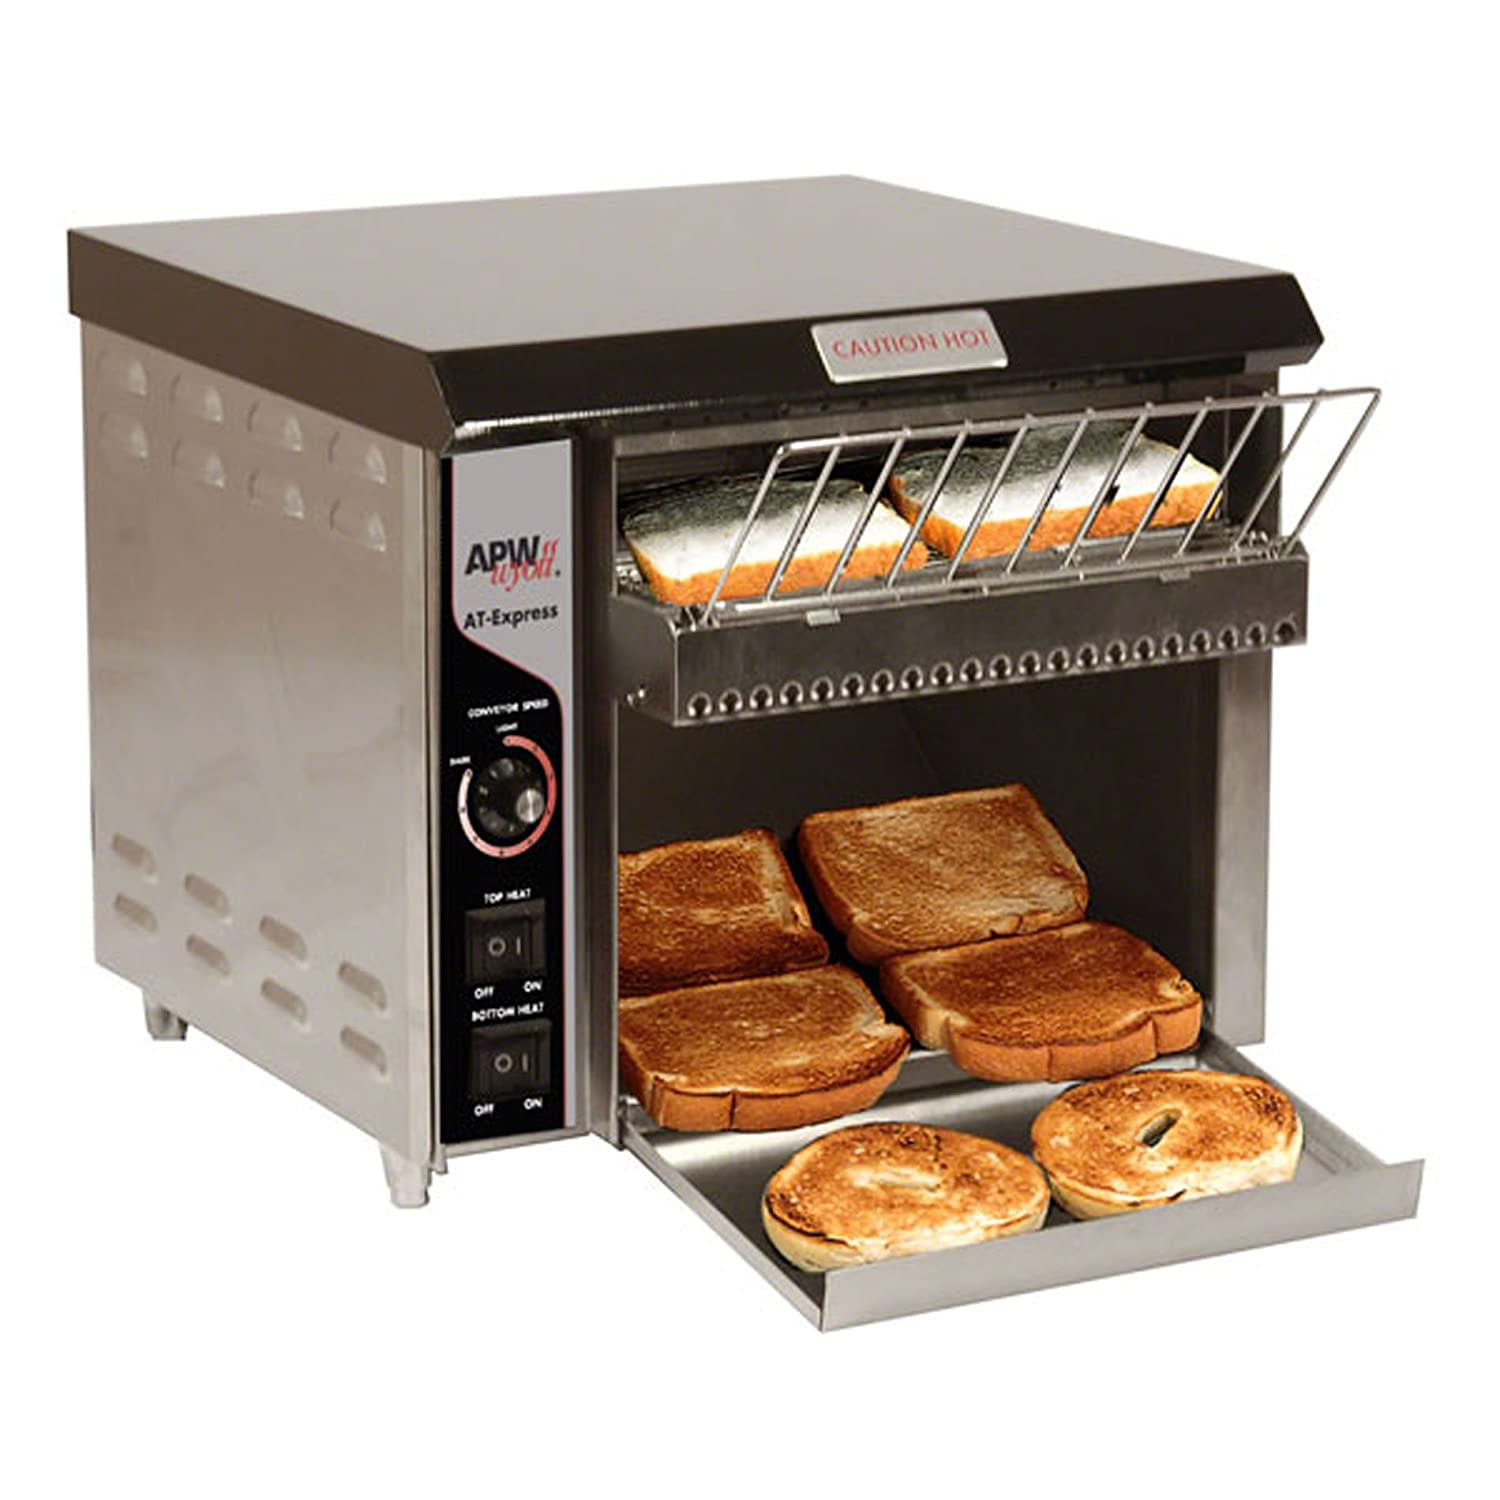 APW/Wyott (AT Express) - 300 Slice/Hr AT Express Conveyor Toaster